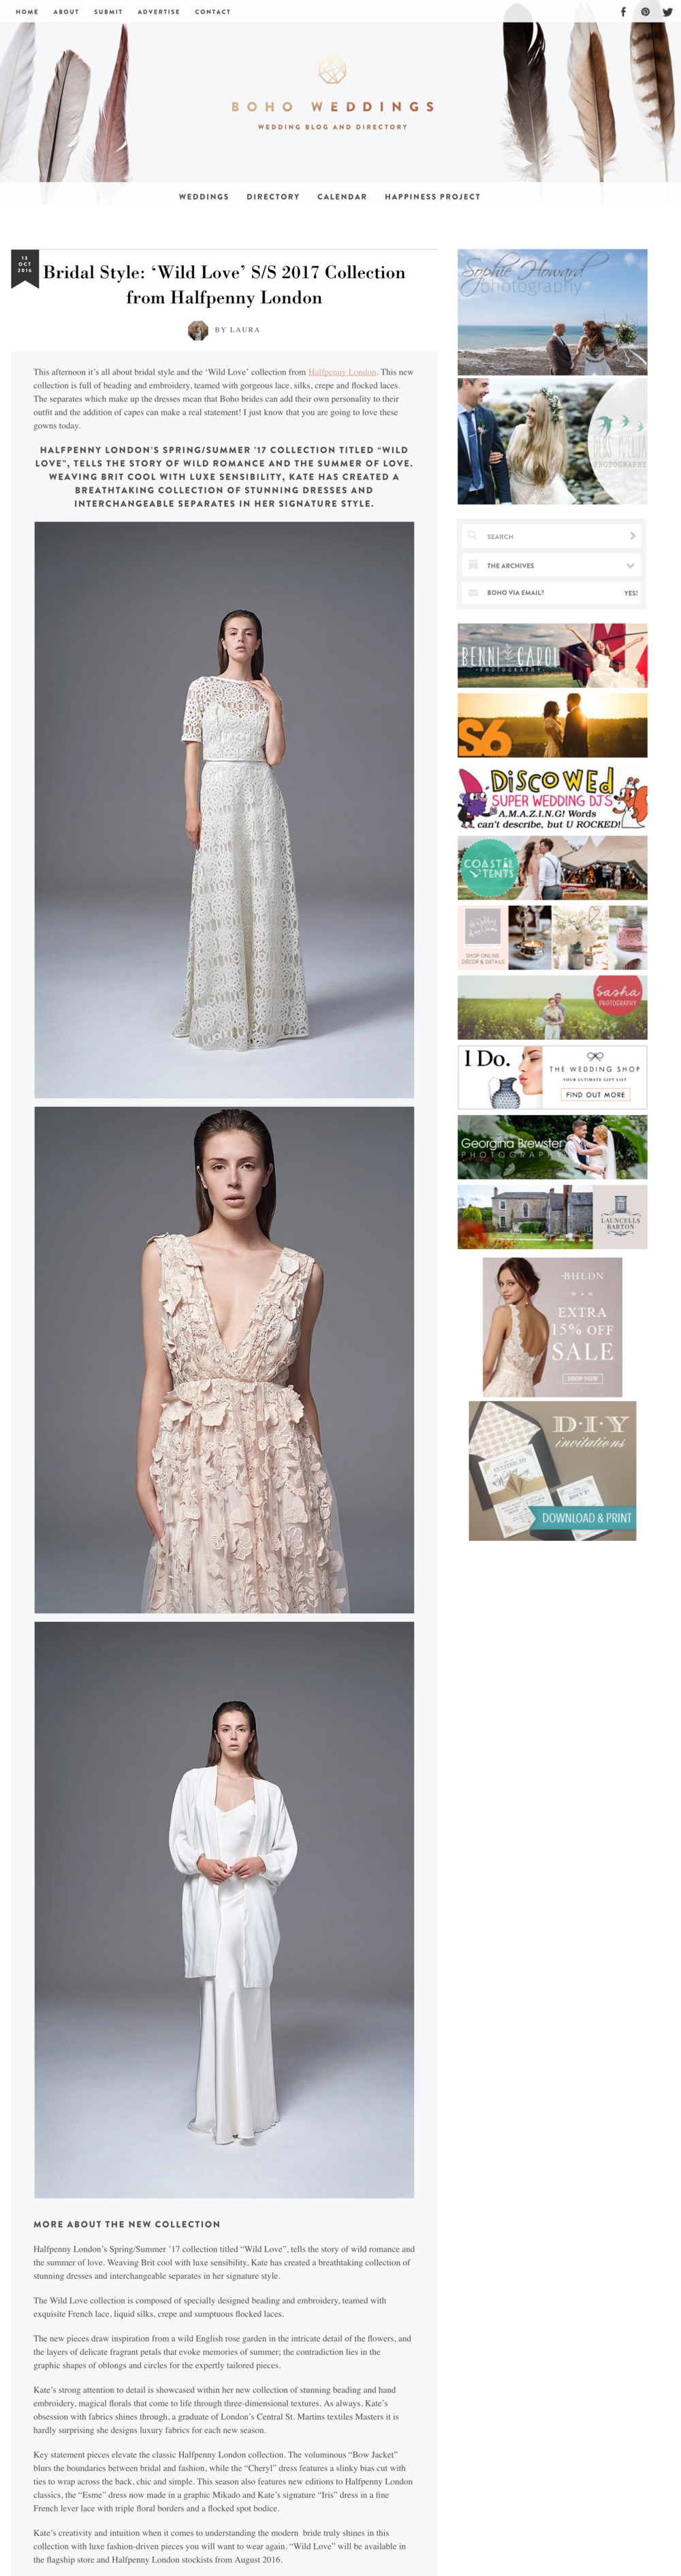 BOHO WEDDINGS - Bridal Style   Wild Love  S S 2017 Collection from Halfpenny London   Boho Weddings™ For the Boho Luxe Bride.png